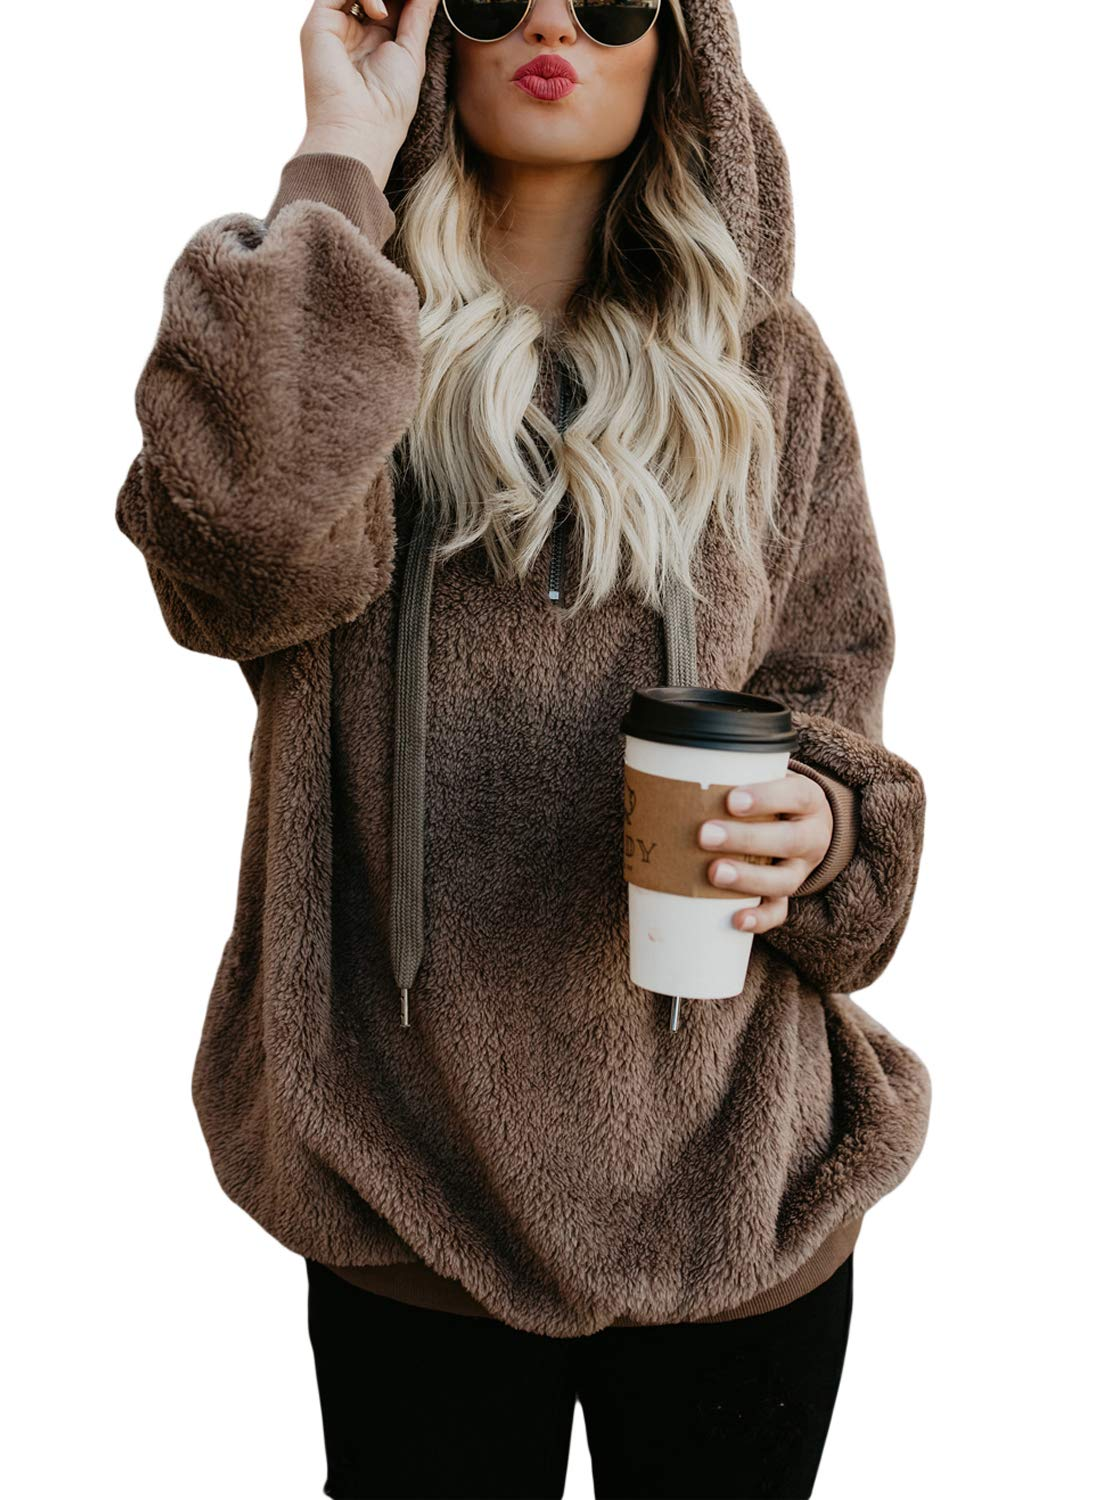 Dokotoo Womens Winter Plus Size Thick Fuzzy Sweatshirt Casual Loose Sweatshirt Hoodies Fleece Pullover Outwear with Pockets Coffee XX-Large